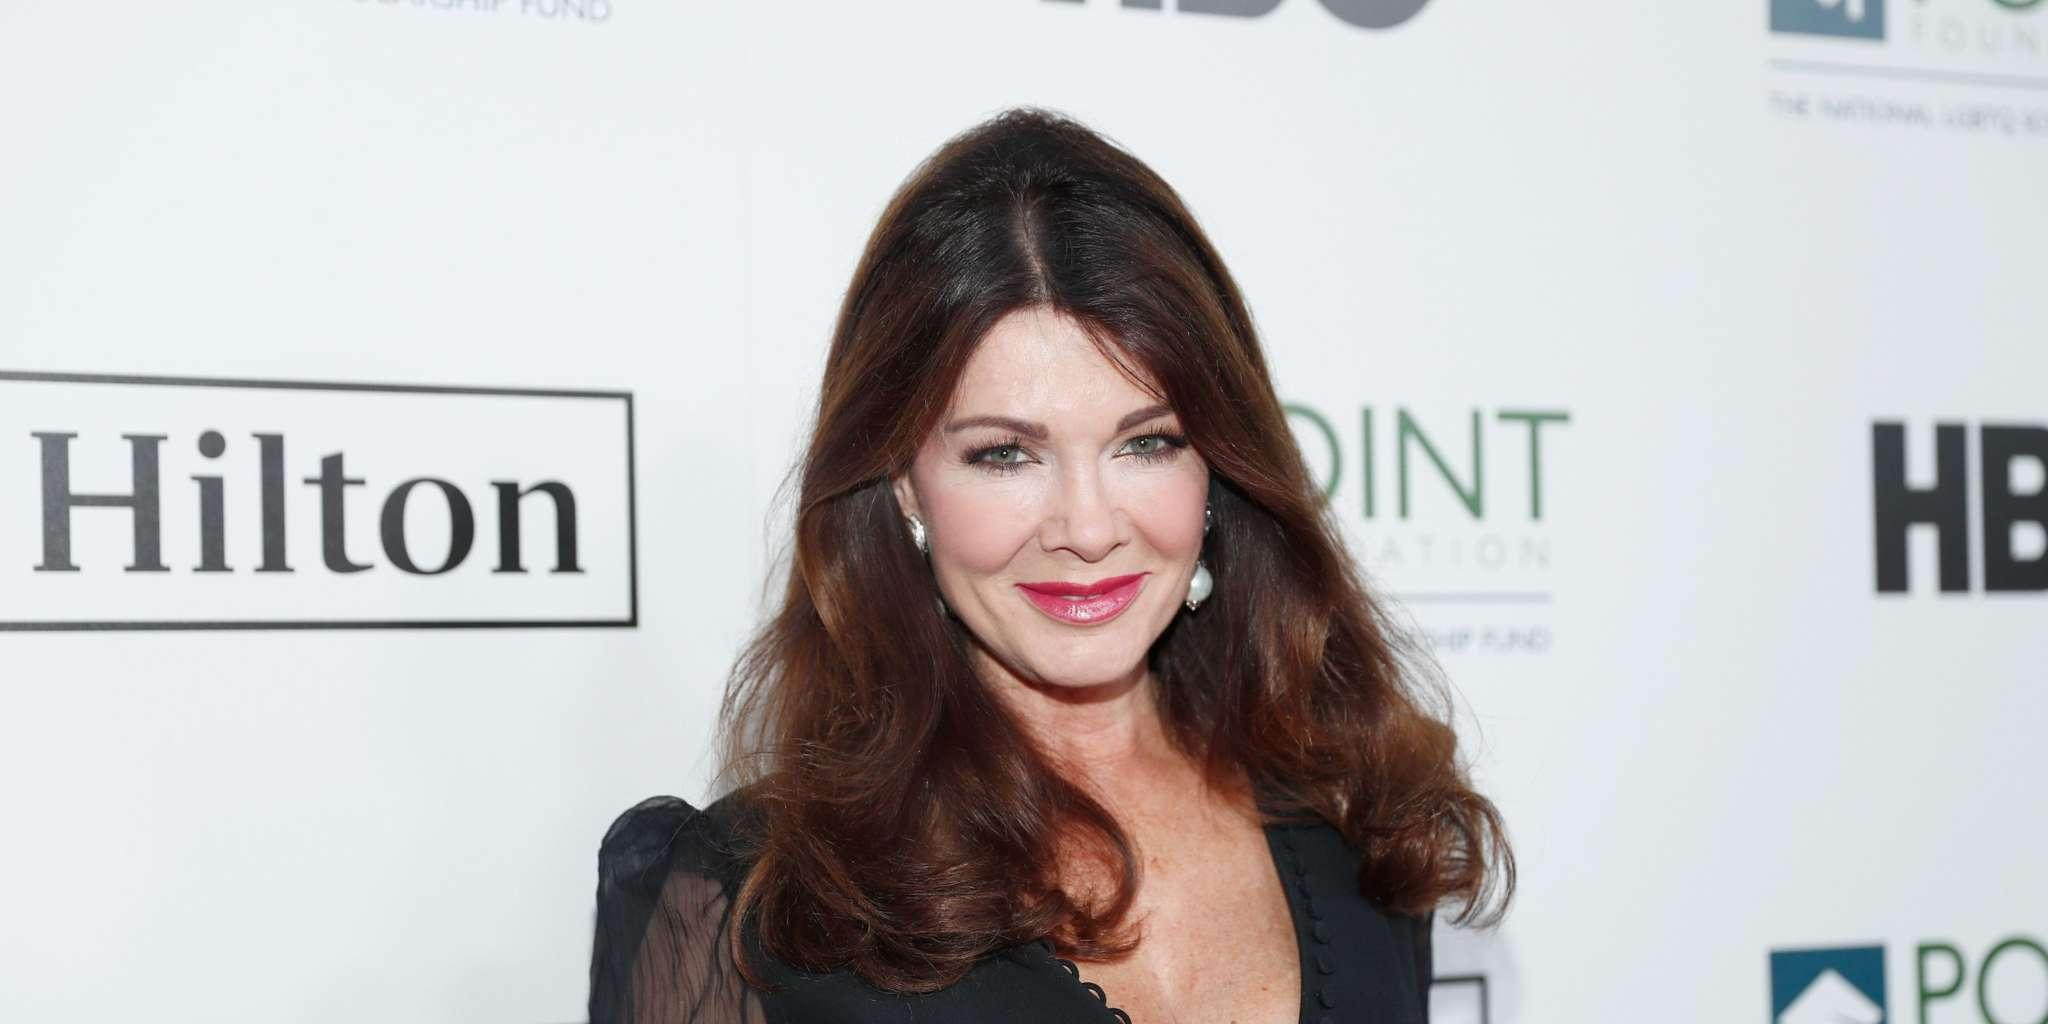 Lisa Vanderpump's Former RHOBH Co-Stars 'Relieved' She's Off The Show